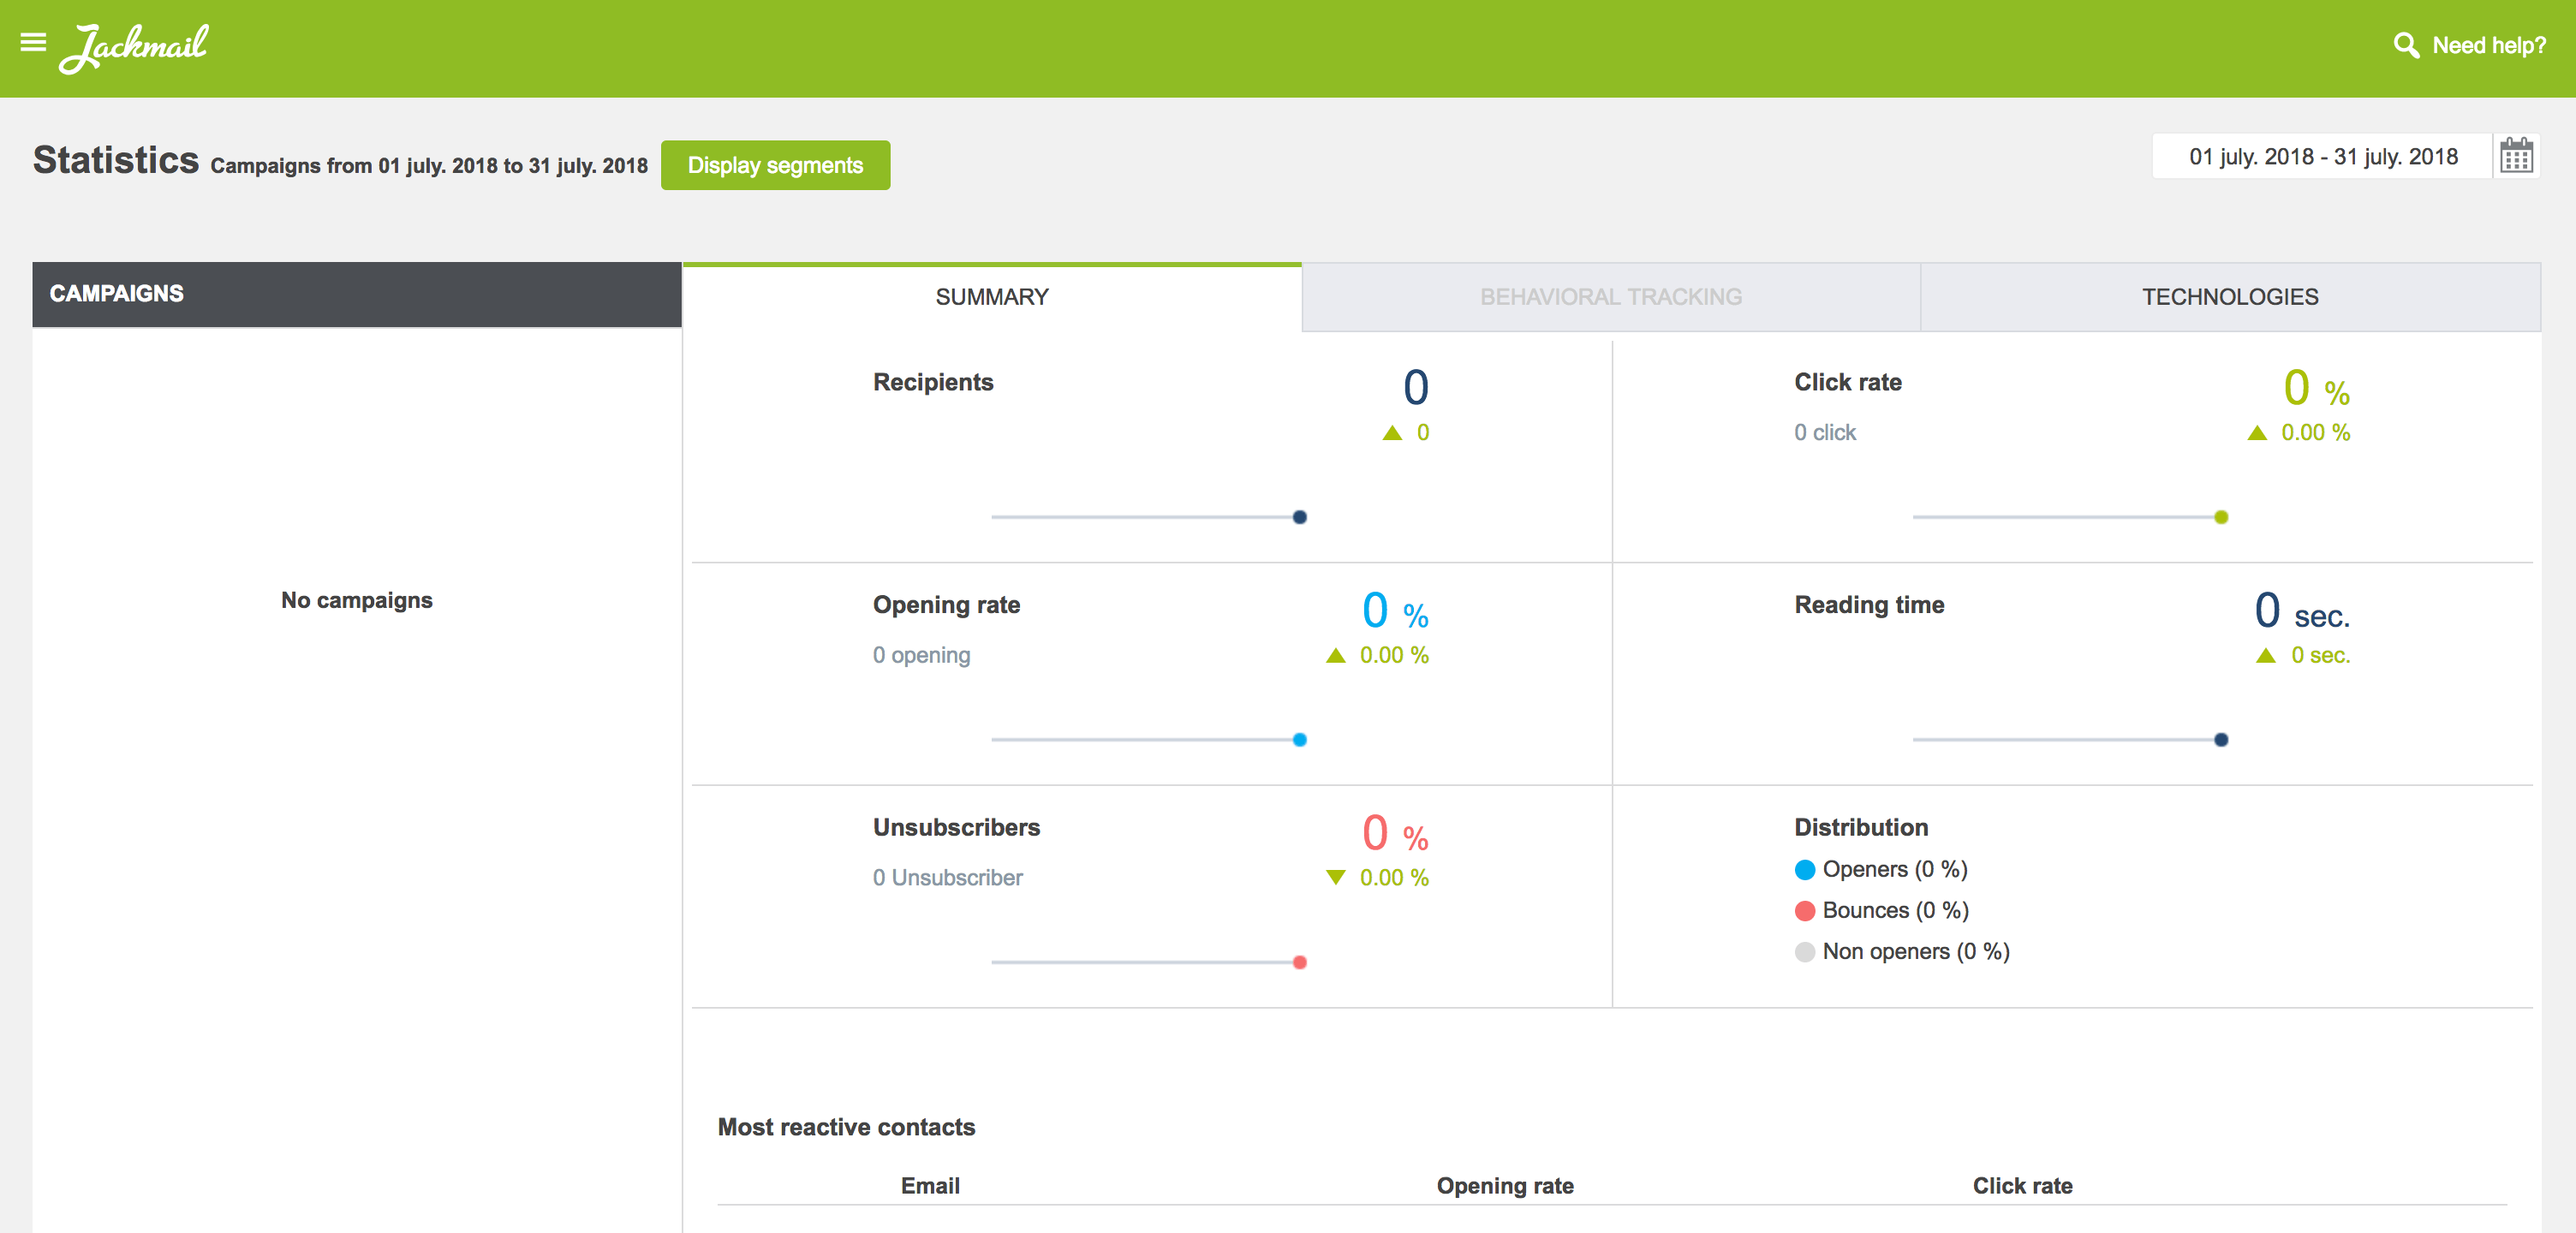 The Statistics screen in Jackmail.